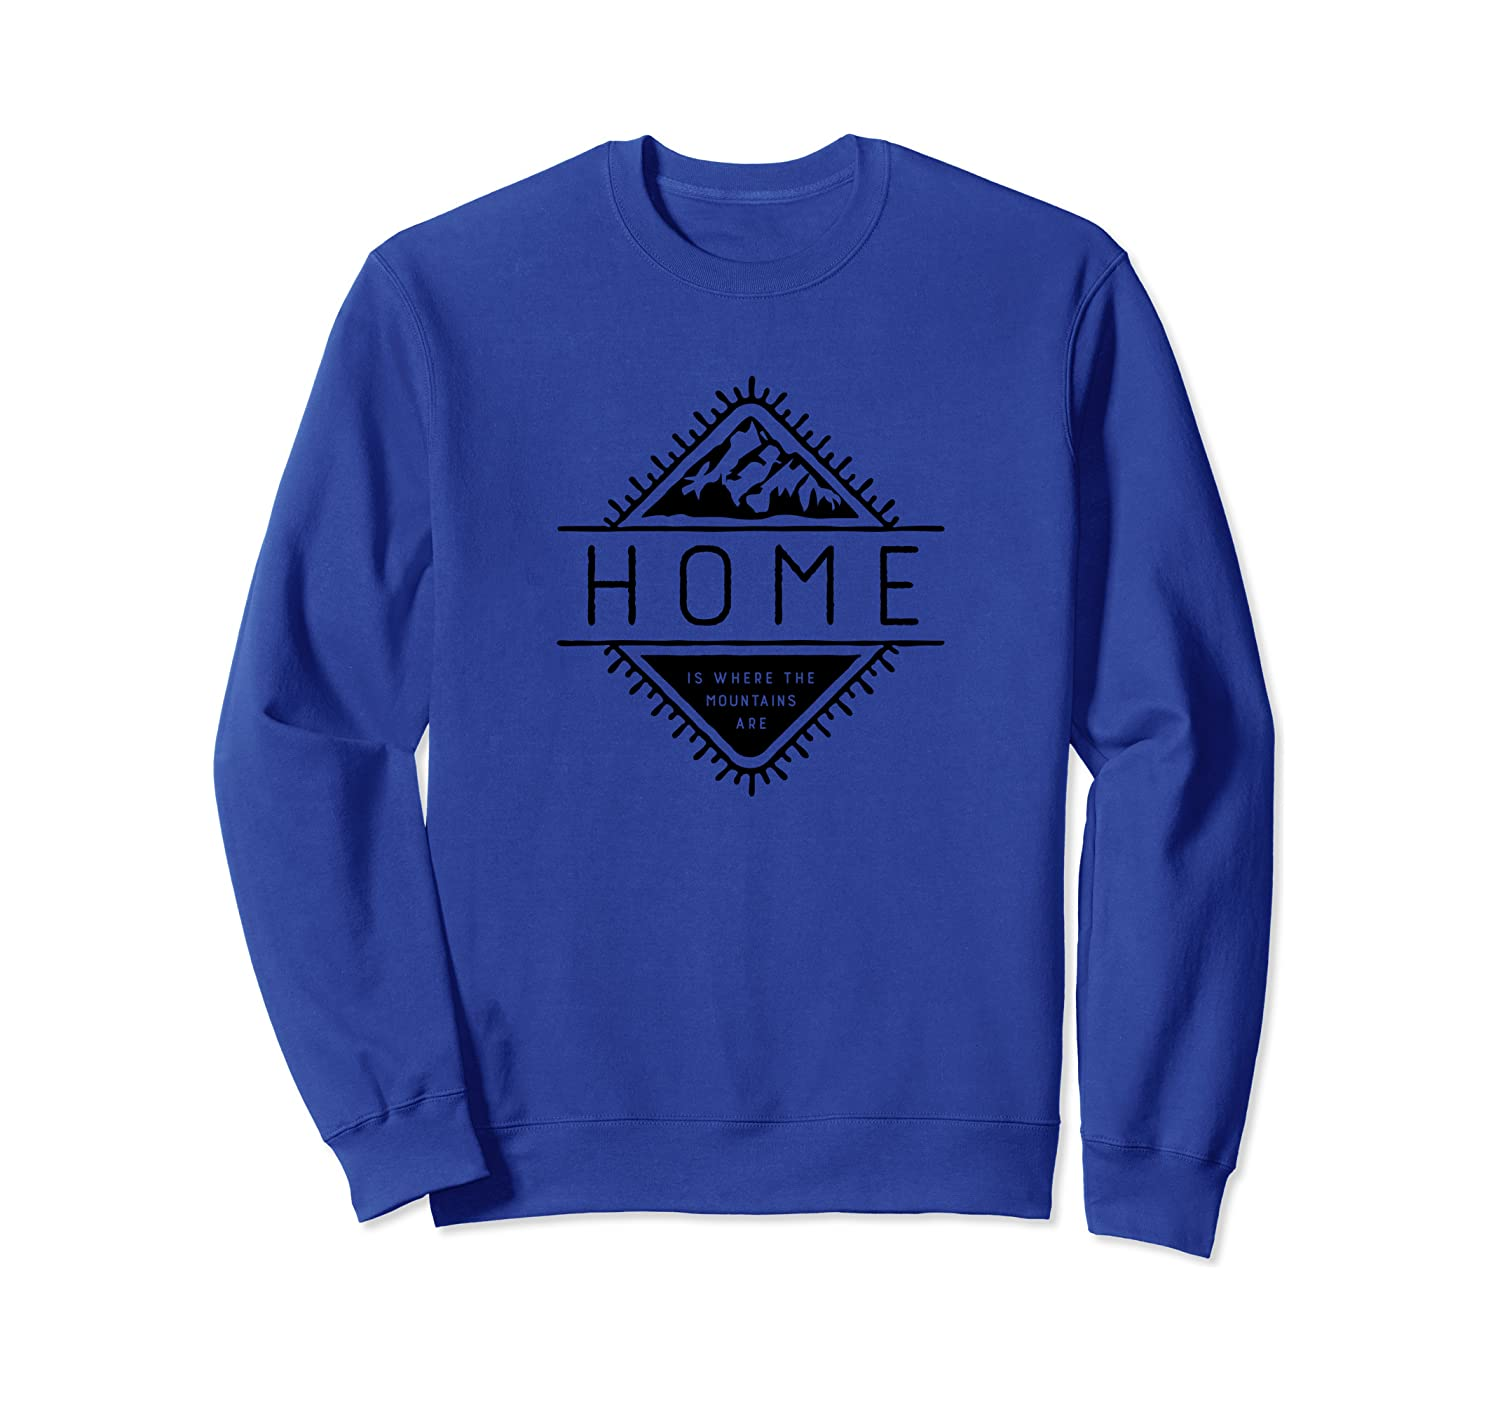 Home is Where the Mountains Are - Camping Adventure Sweatshirt